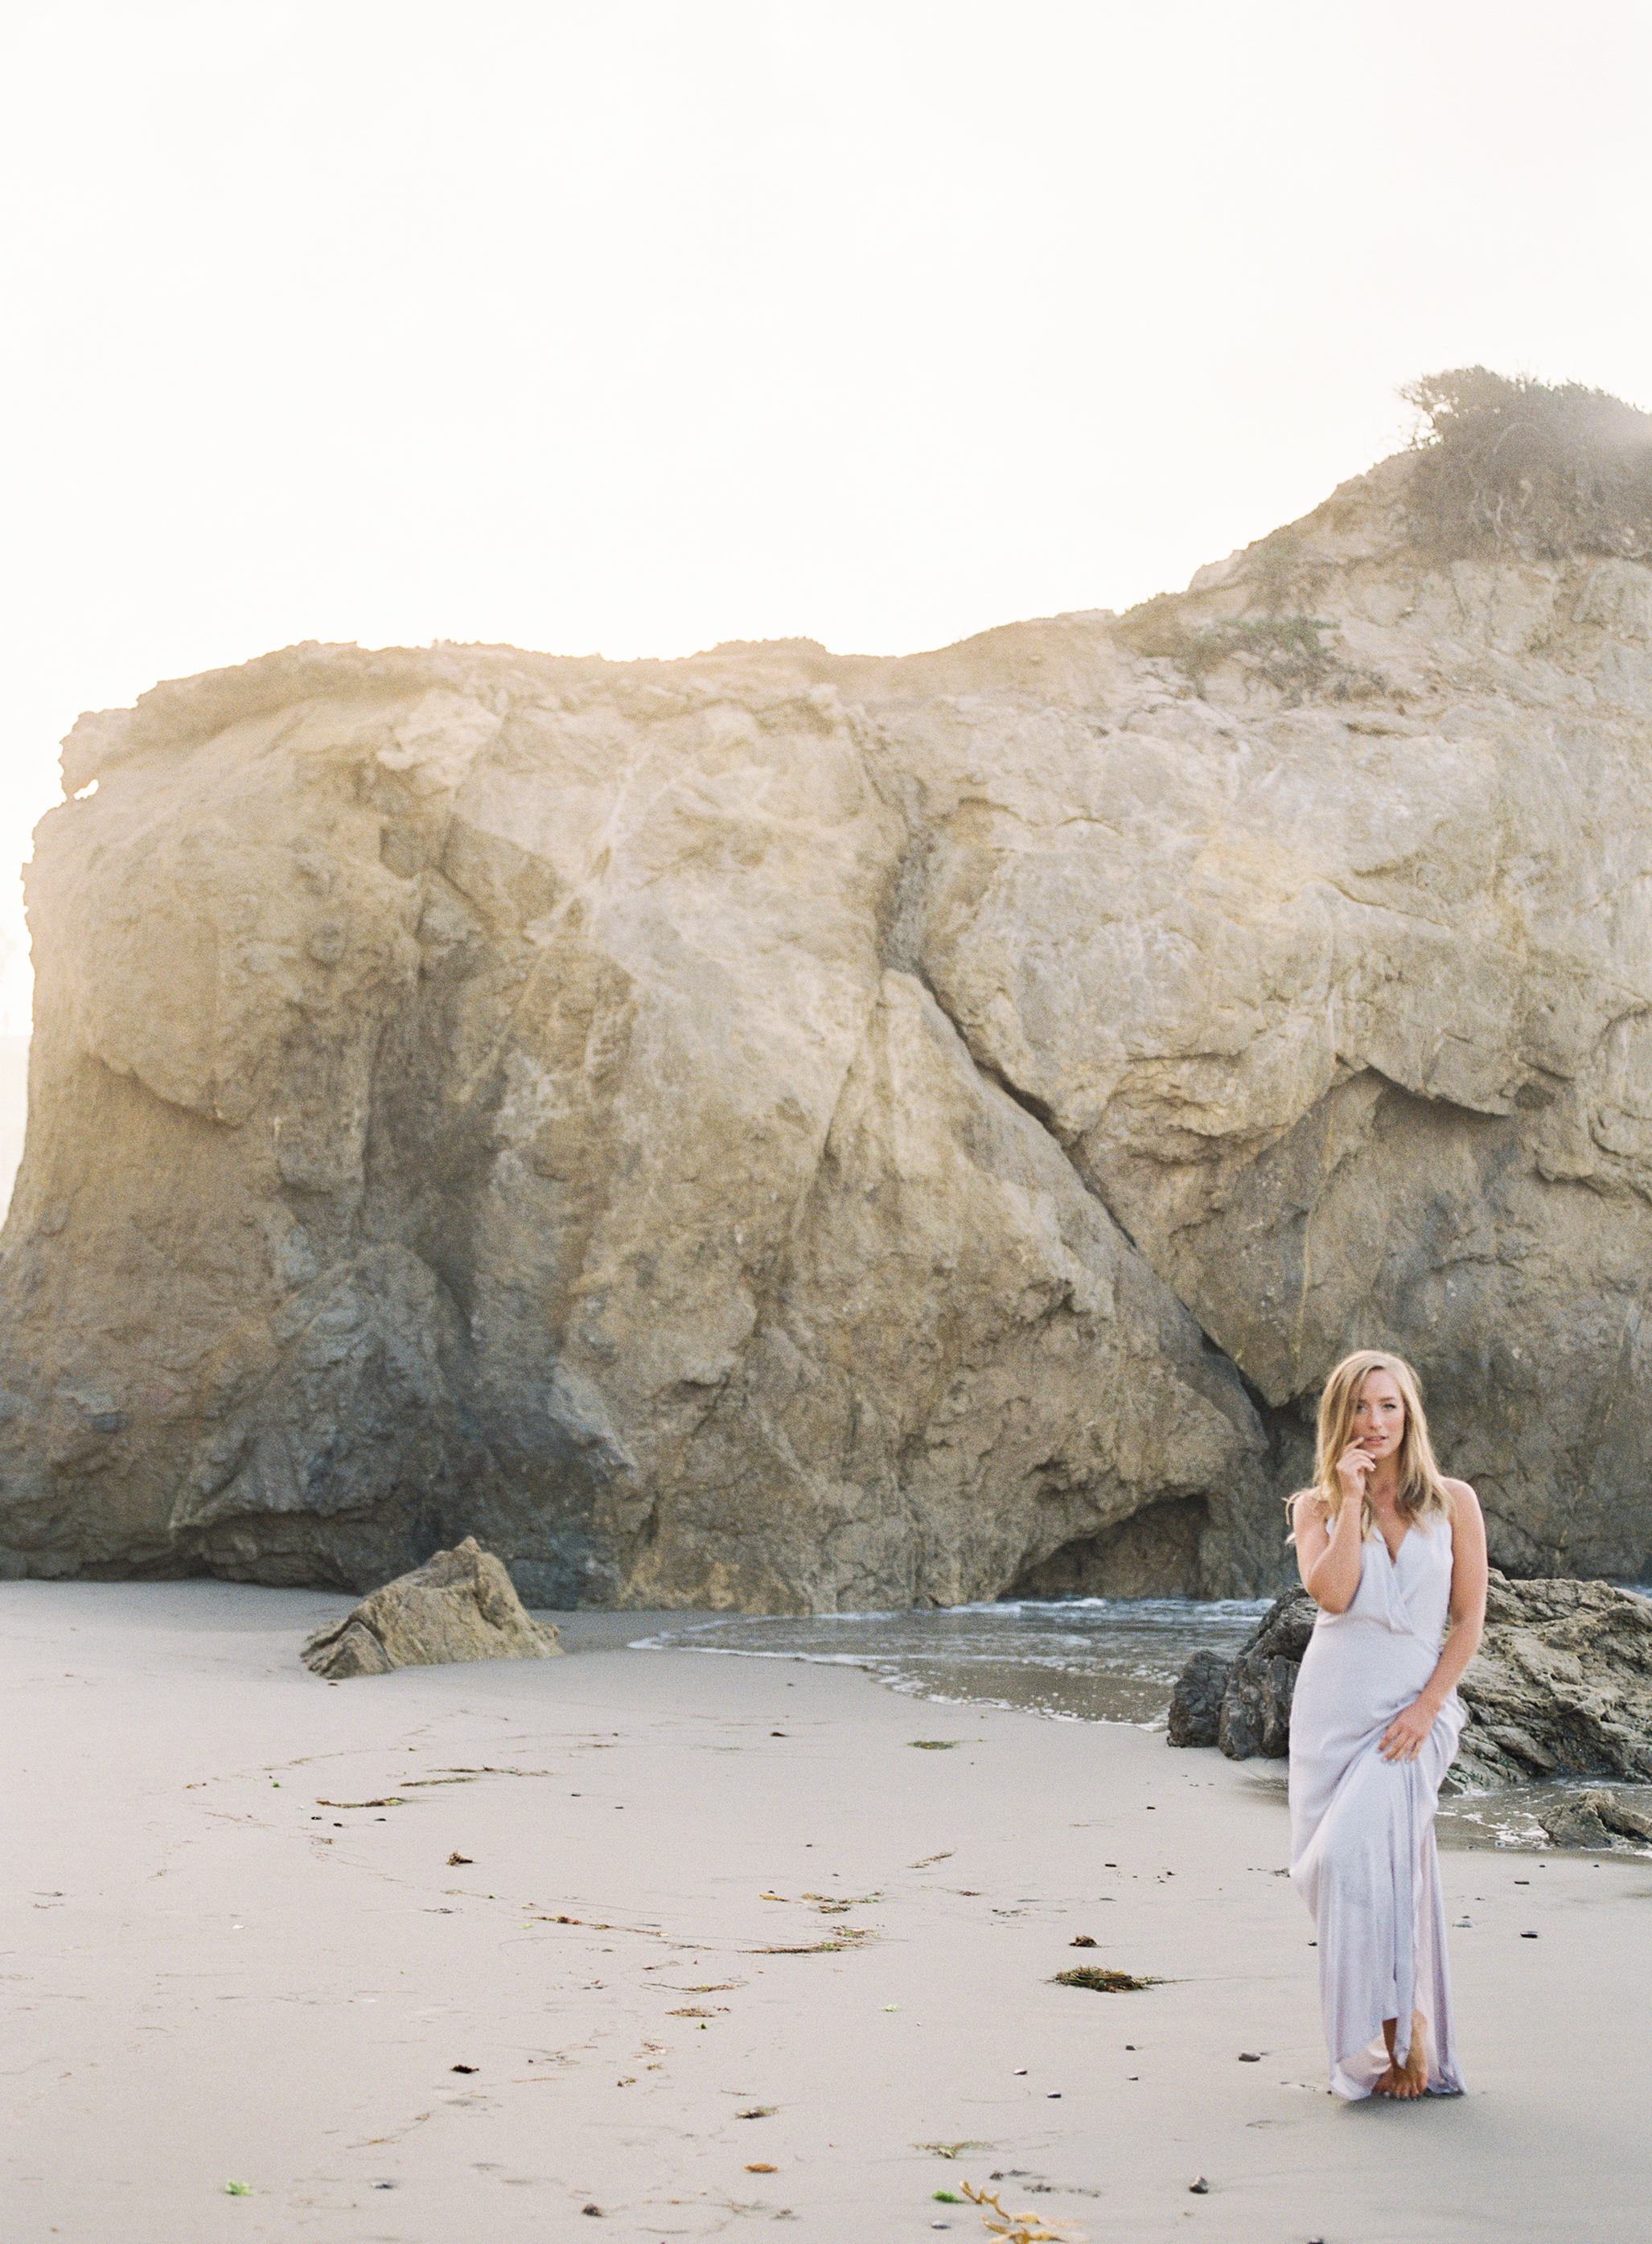 Charlotta - El Matador Beach Malibu - Peaches & Twine Fine Art Film Photography -67.jpg